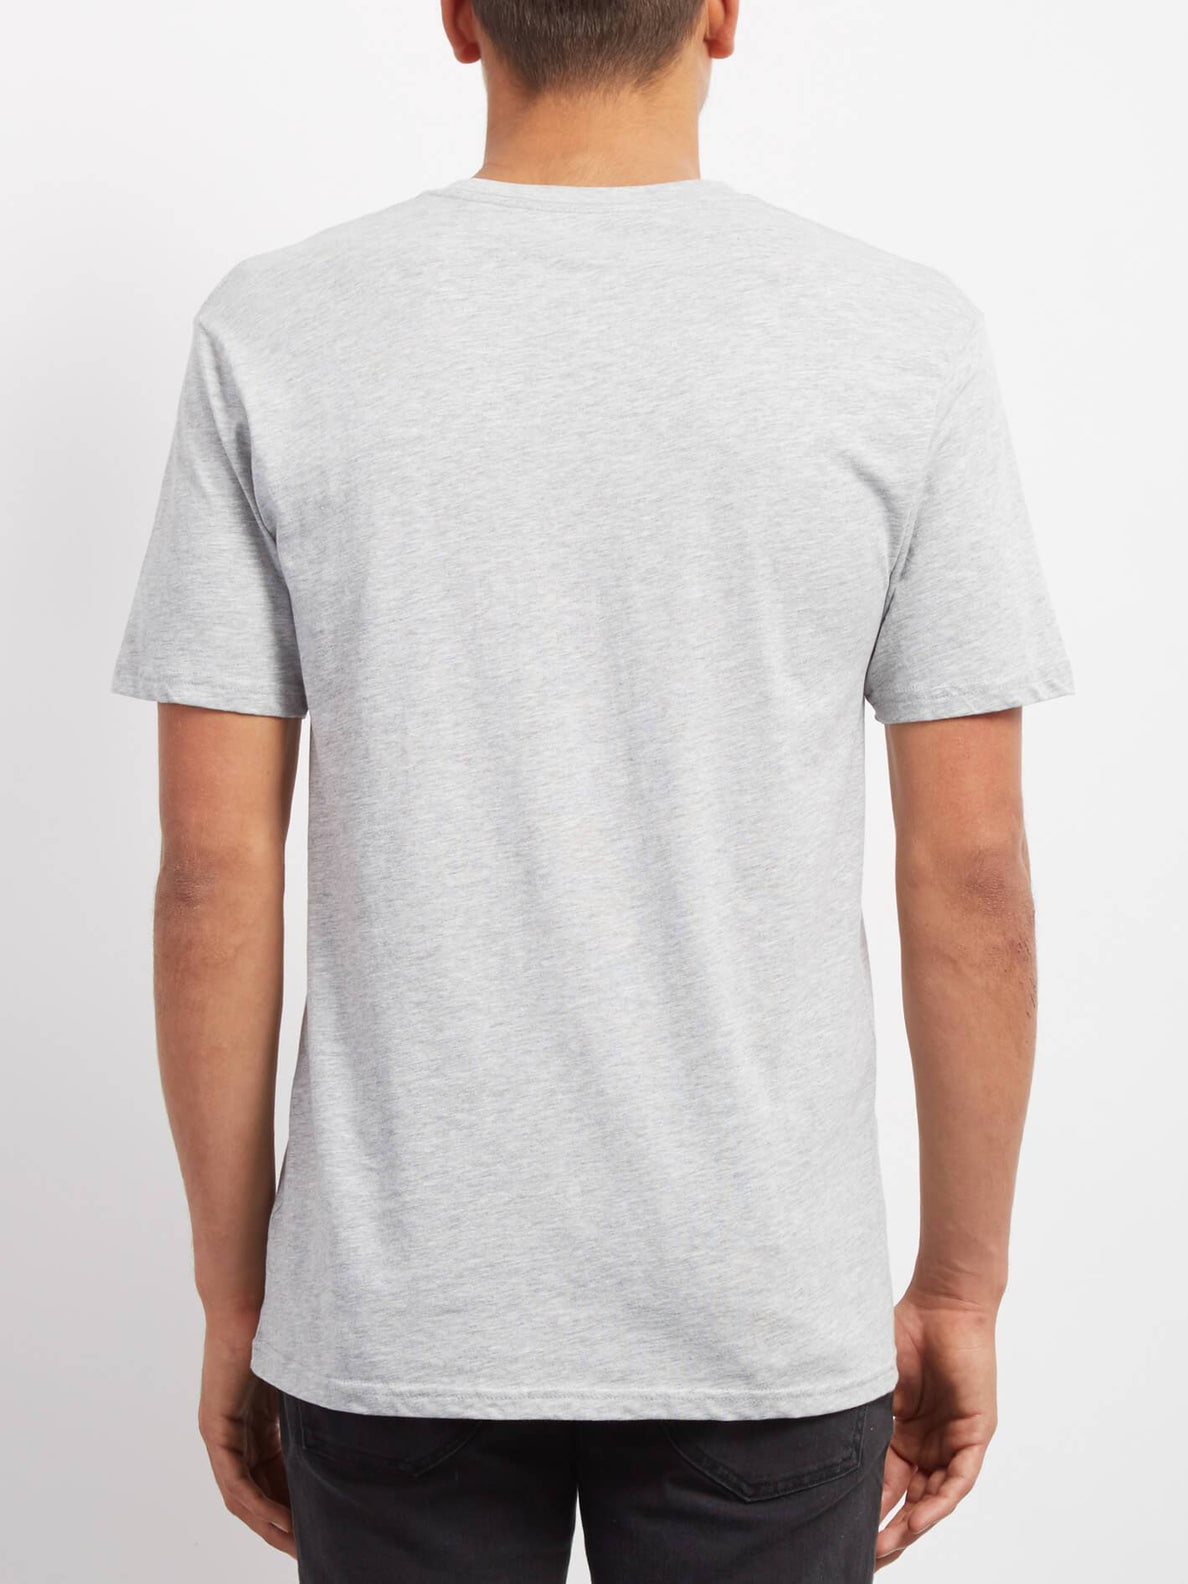 Crisp Euro T-shirt - Heather Grey